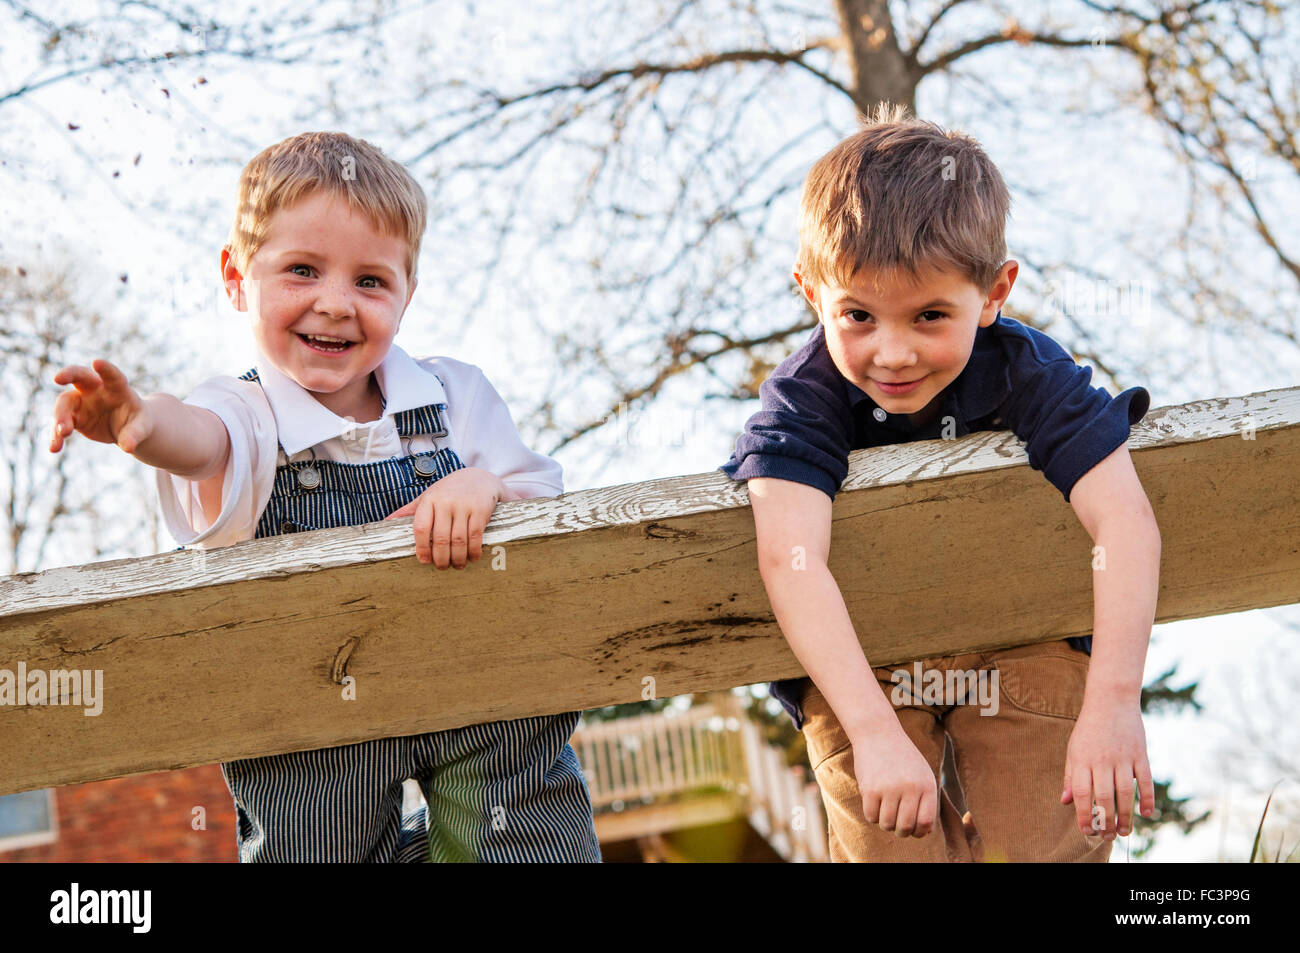 Two boys swinging on bellies - Stock Image